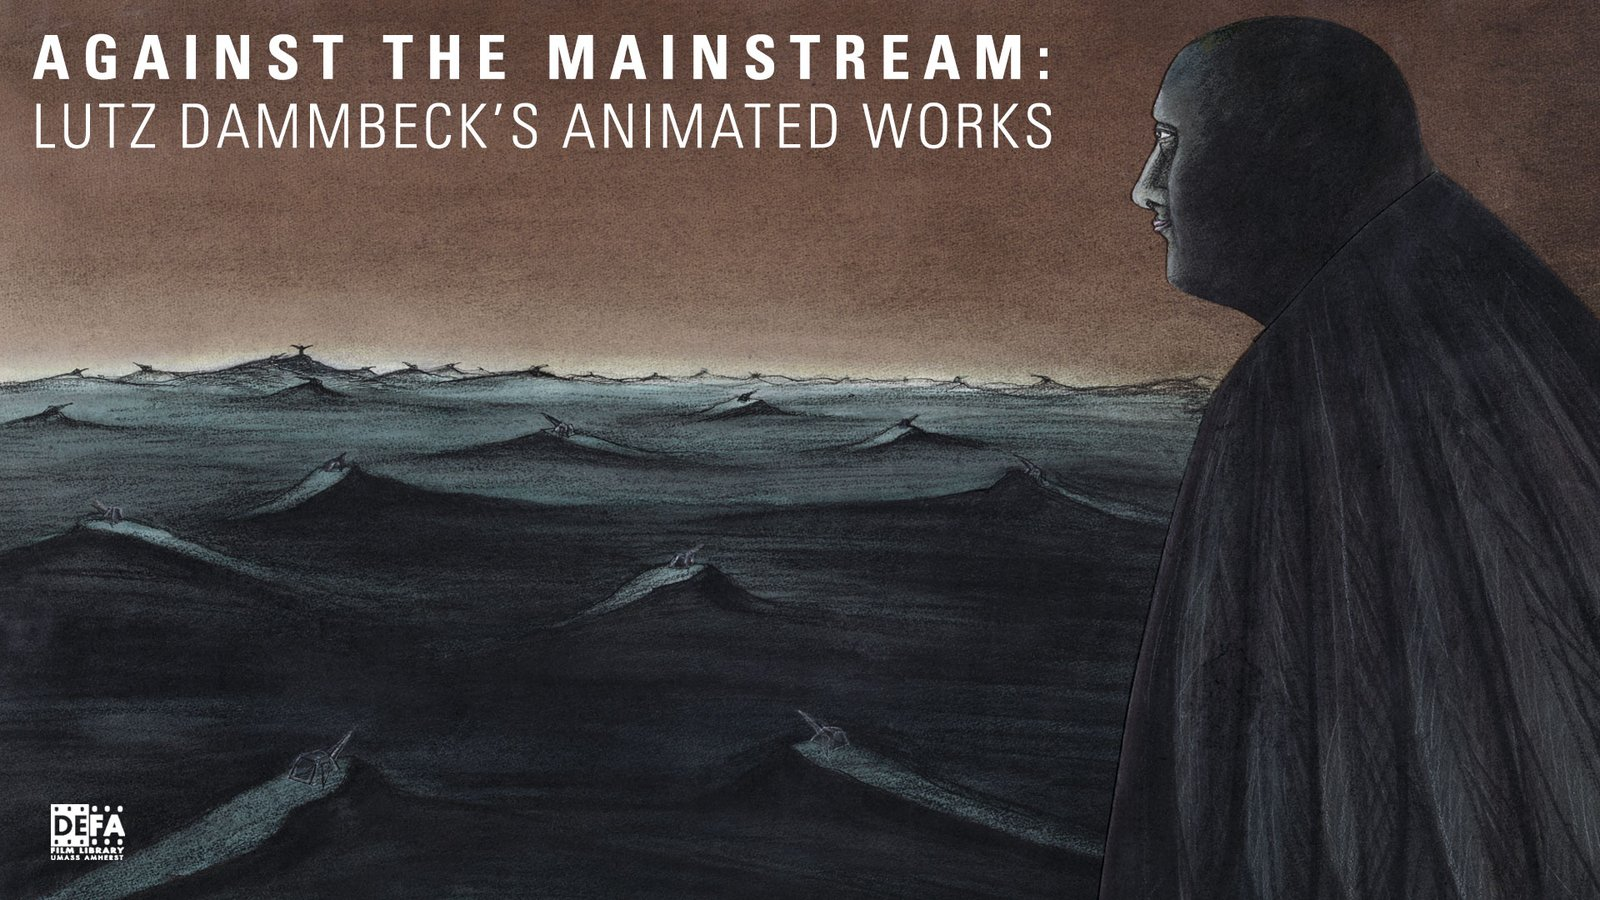 Lutz Dammbeck: Against the Mainstream - Dammbeck's Animated Works